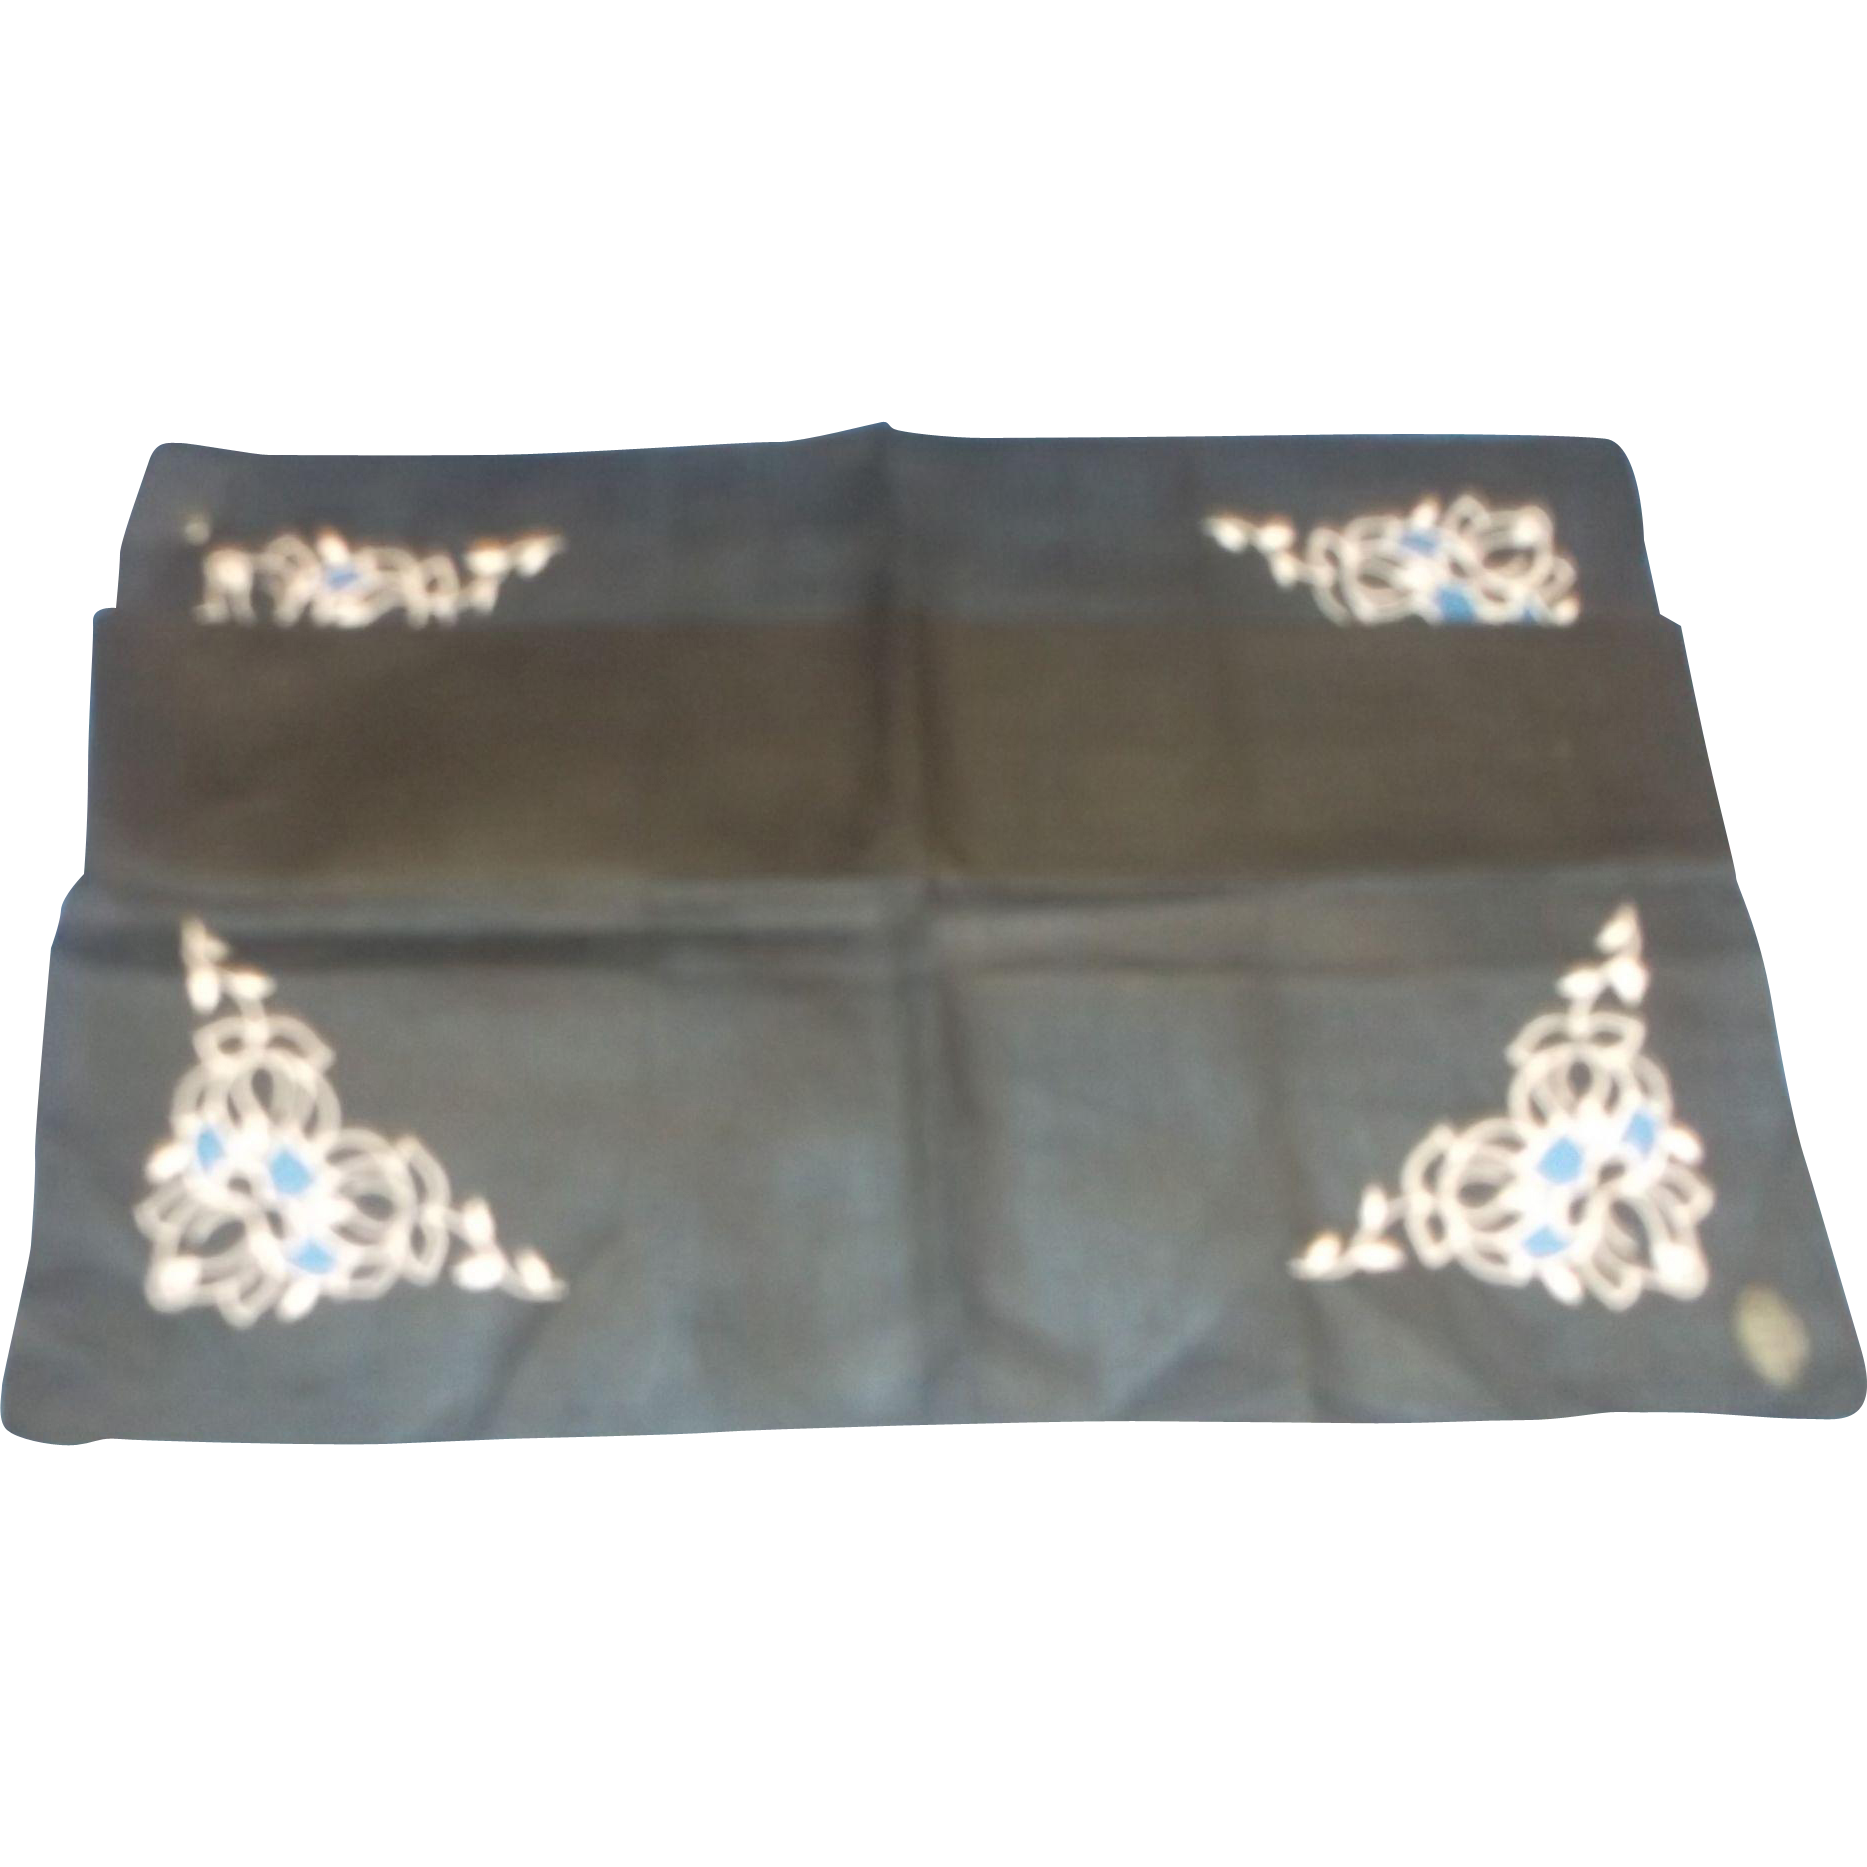 Black Cotton White Embroidered Cut Out Ladies' Handkerchief Roblee Switzerland